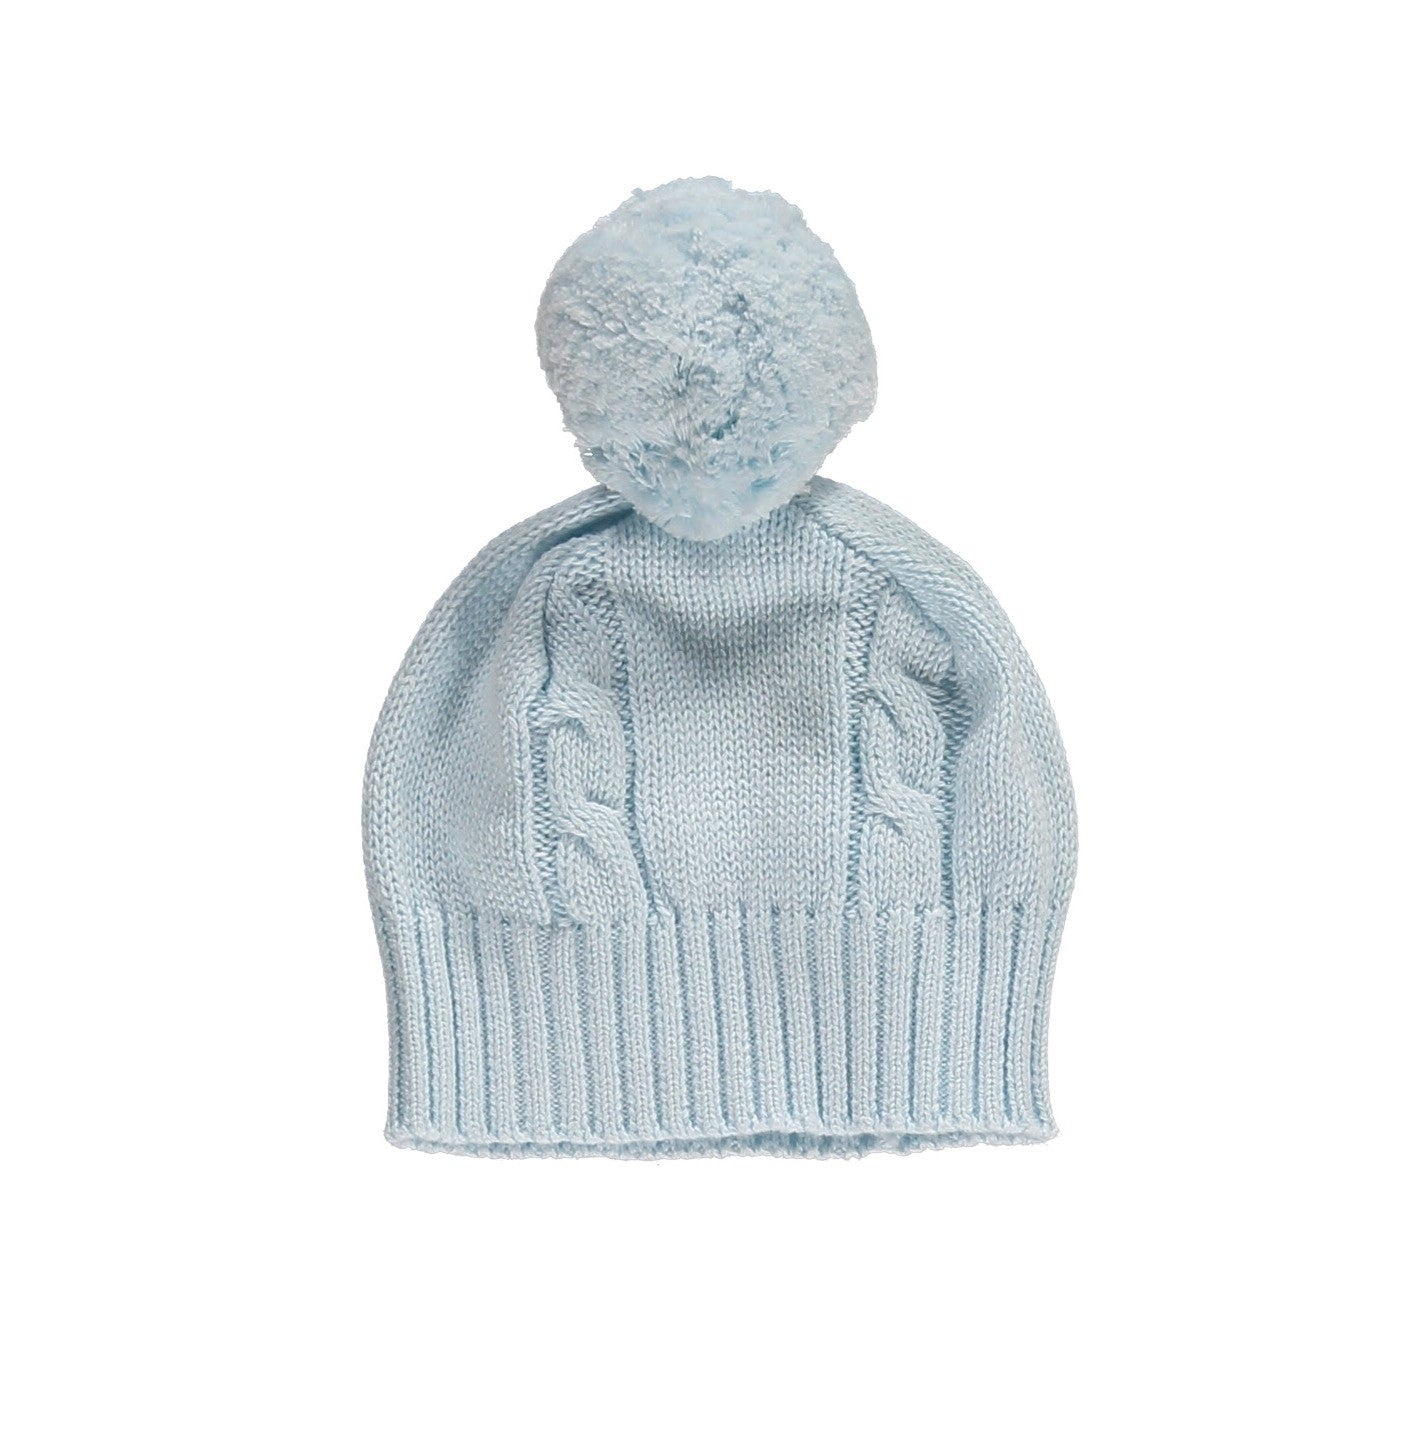 Fuzzy Cable Knit Bobble Hat - Pale blue